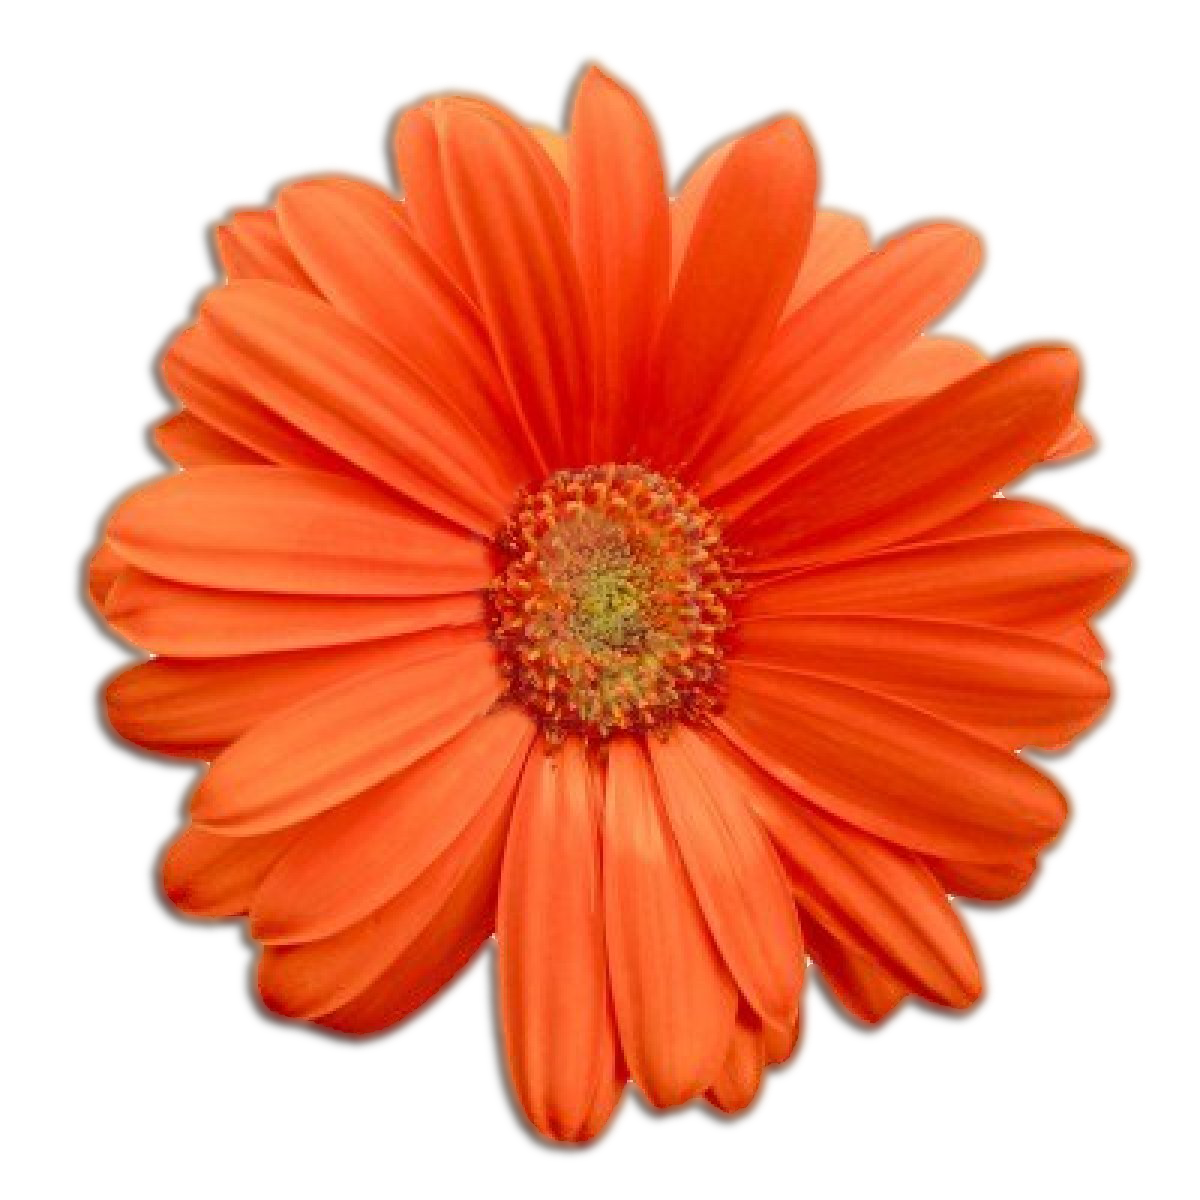 Orange Flower Png image #17942